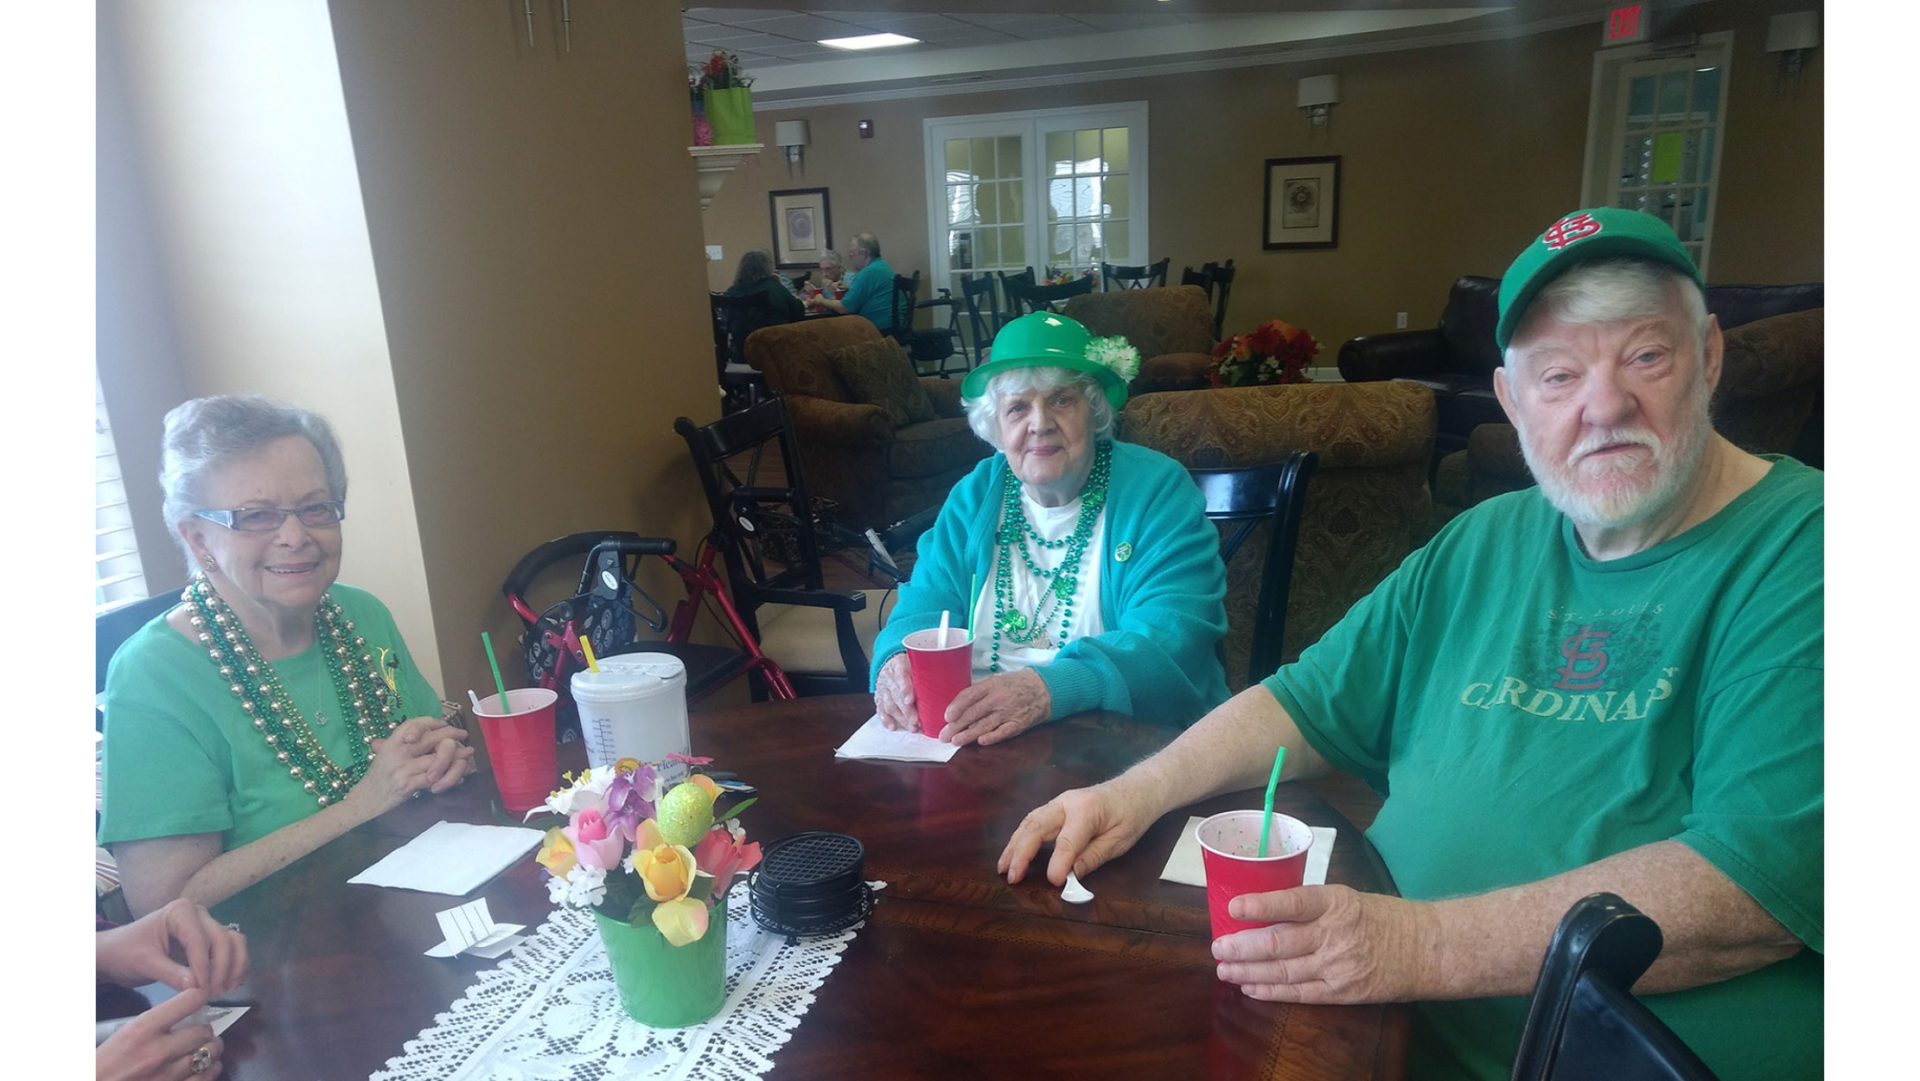 The Wyndham Park Residents Gather In Their St. Patrick's Day Attire For Their Annual Party.